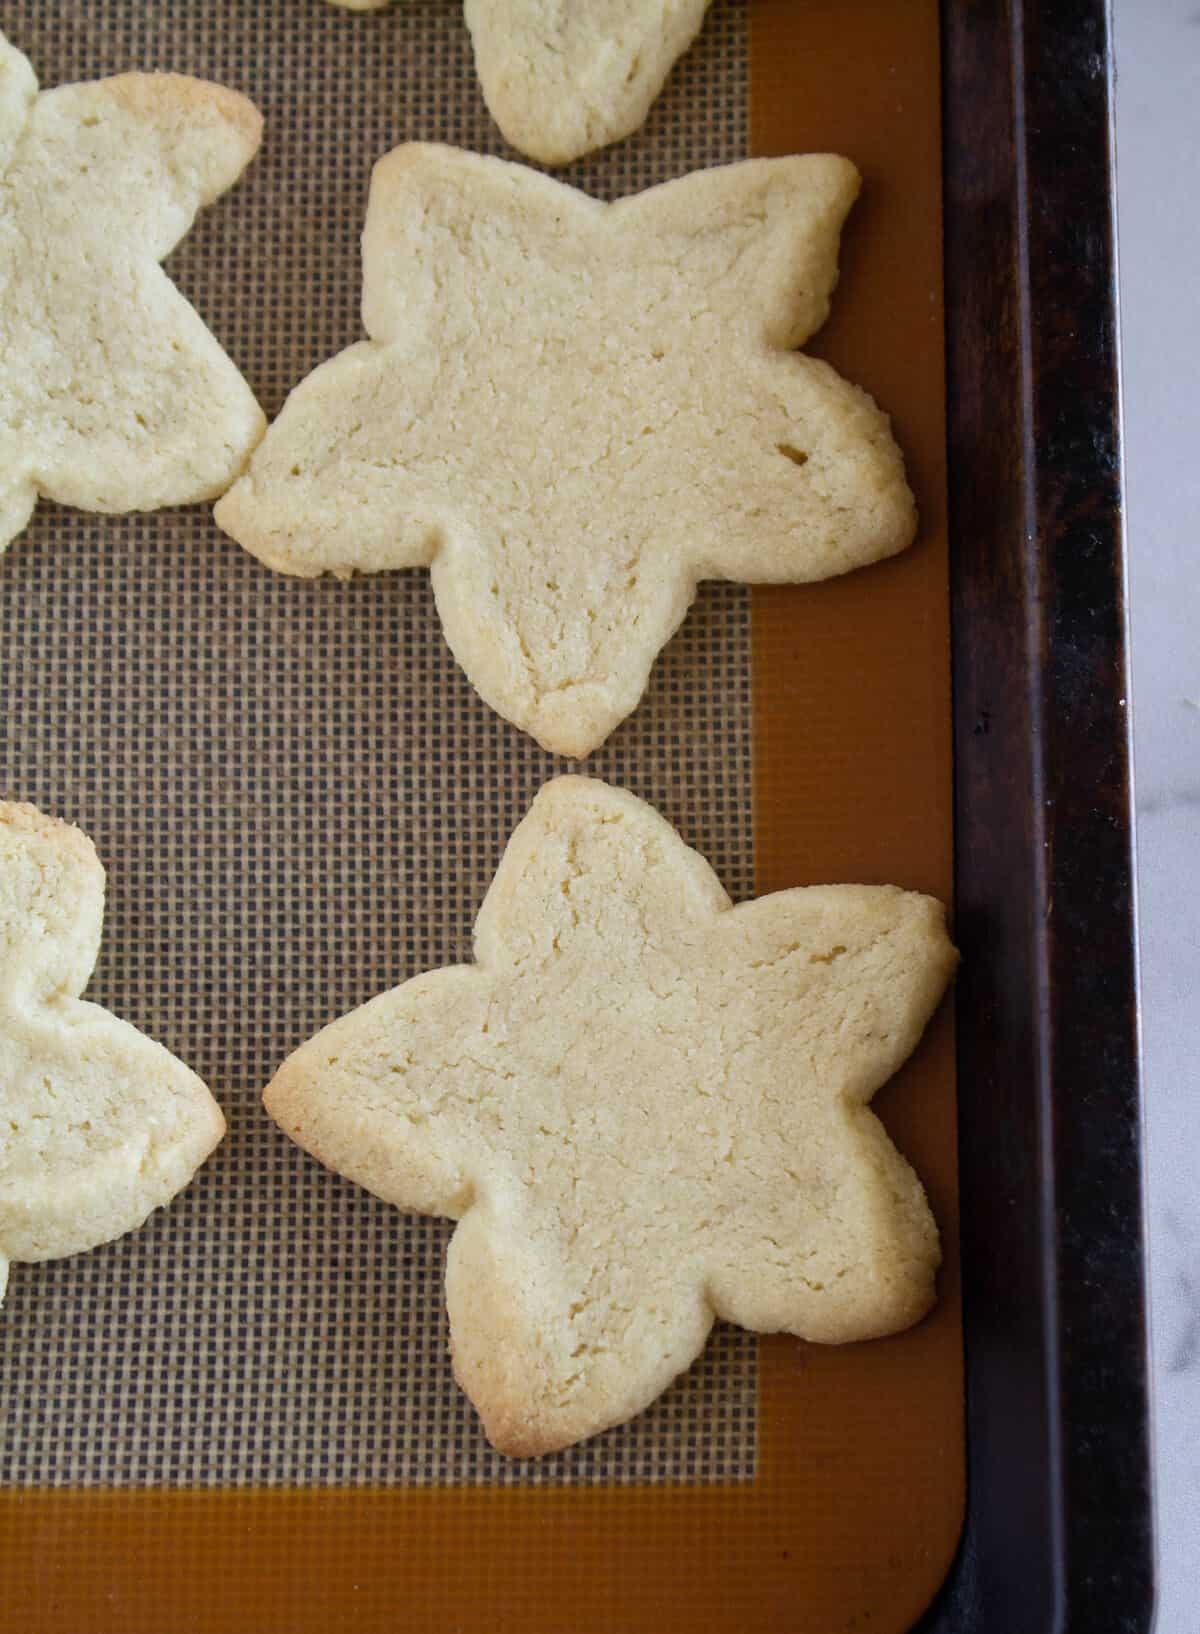 star shaped cookies on baking sheet